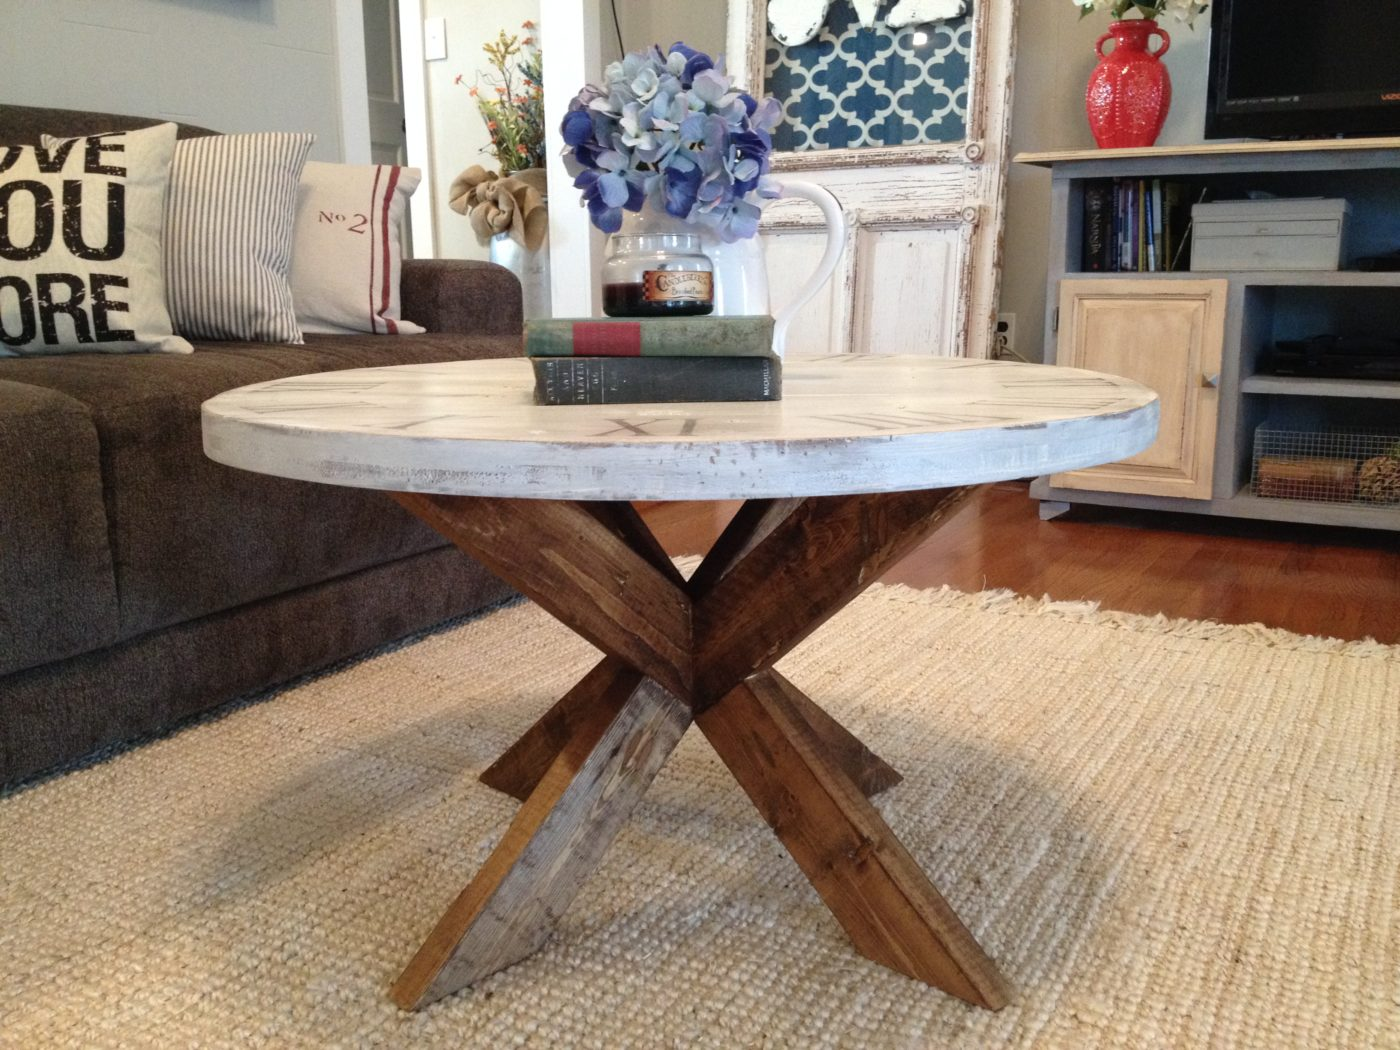 - Round And Round We Go--The Story Of My DIY Coffee Table